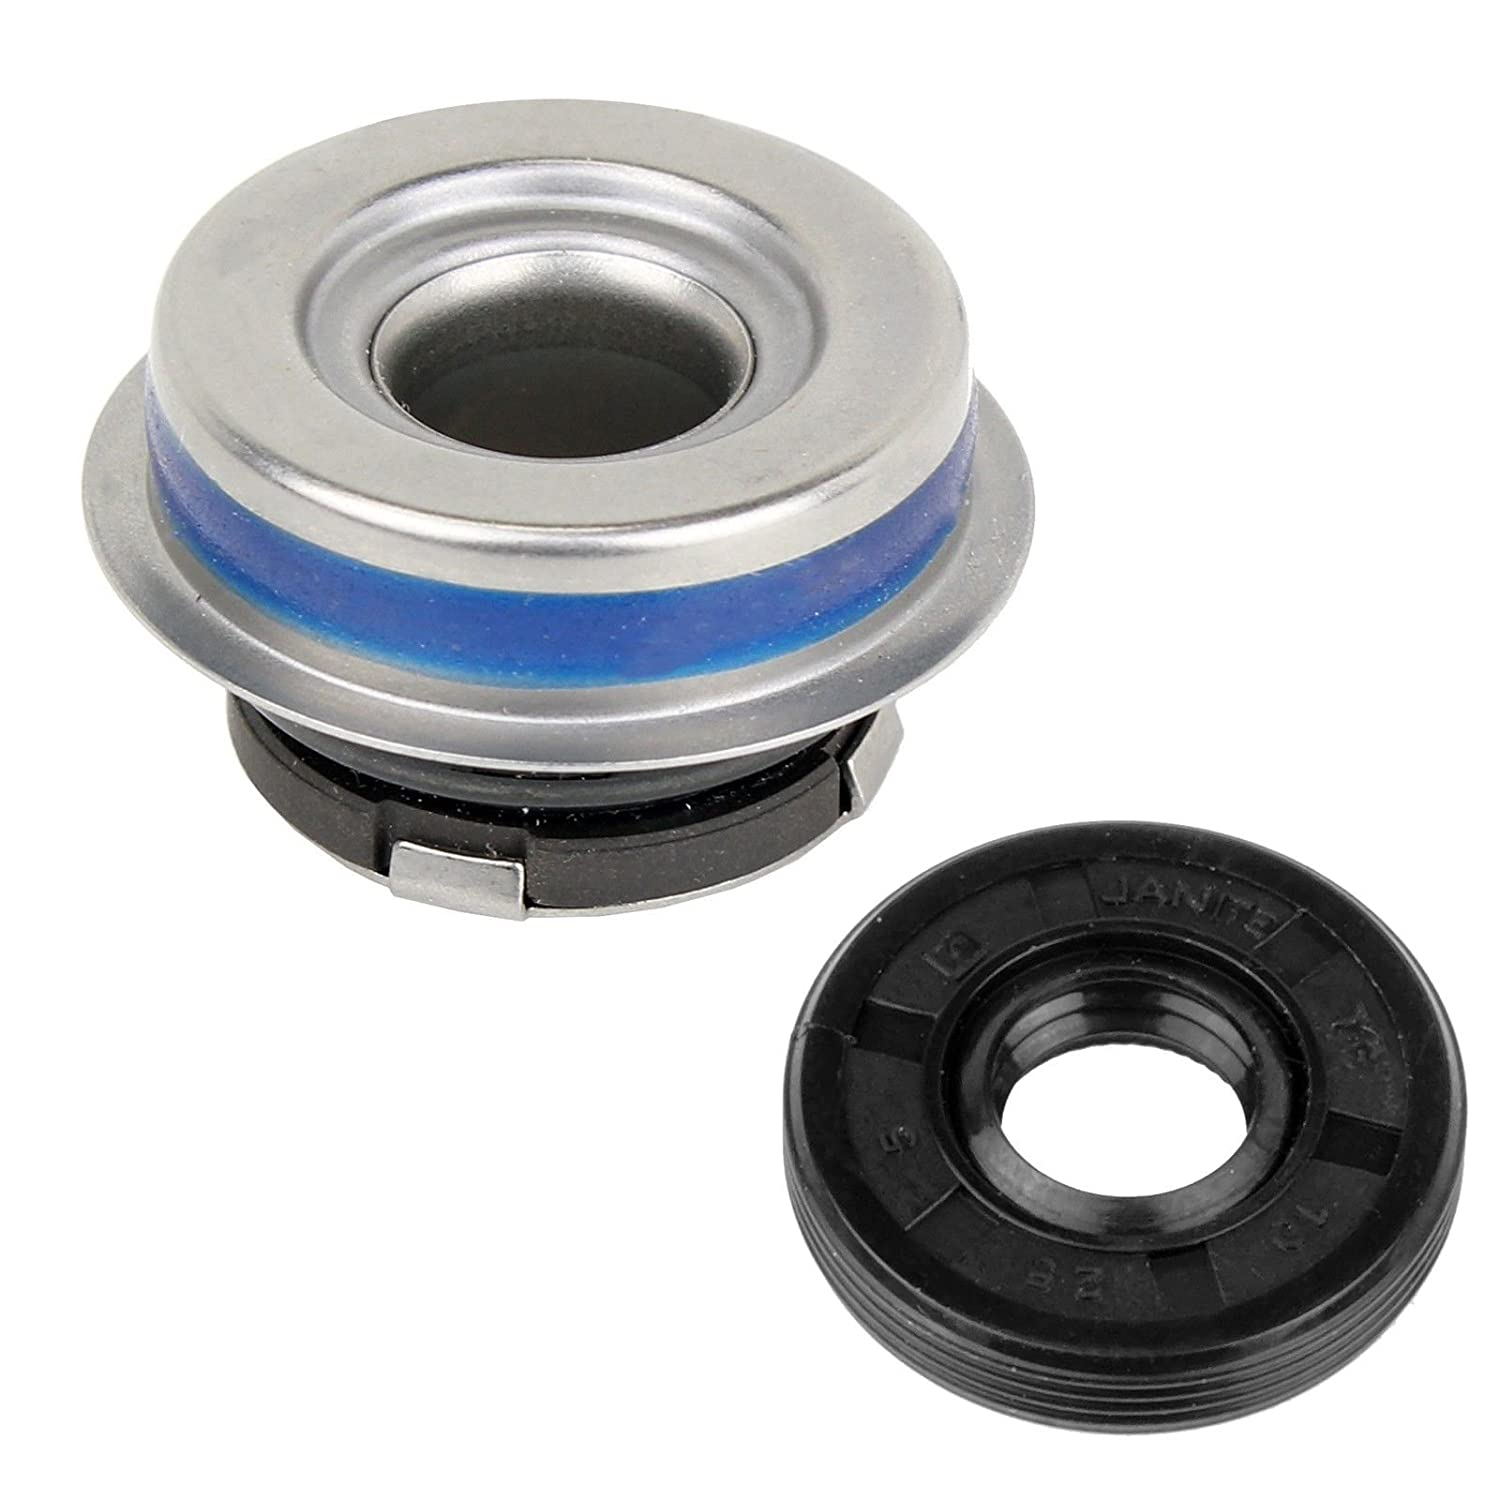 CALTRIC WATER PUMP MECHANICAL SEAL FITS Can-Am RENEGADE 800 4X4 X XXC EFI 2007 2008 2009 2010-2015